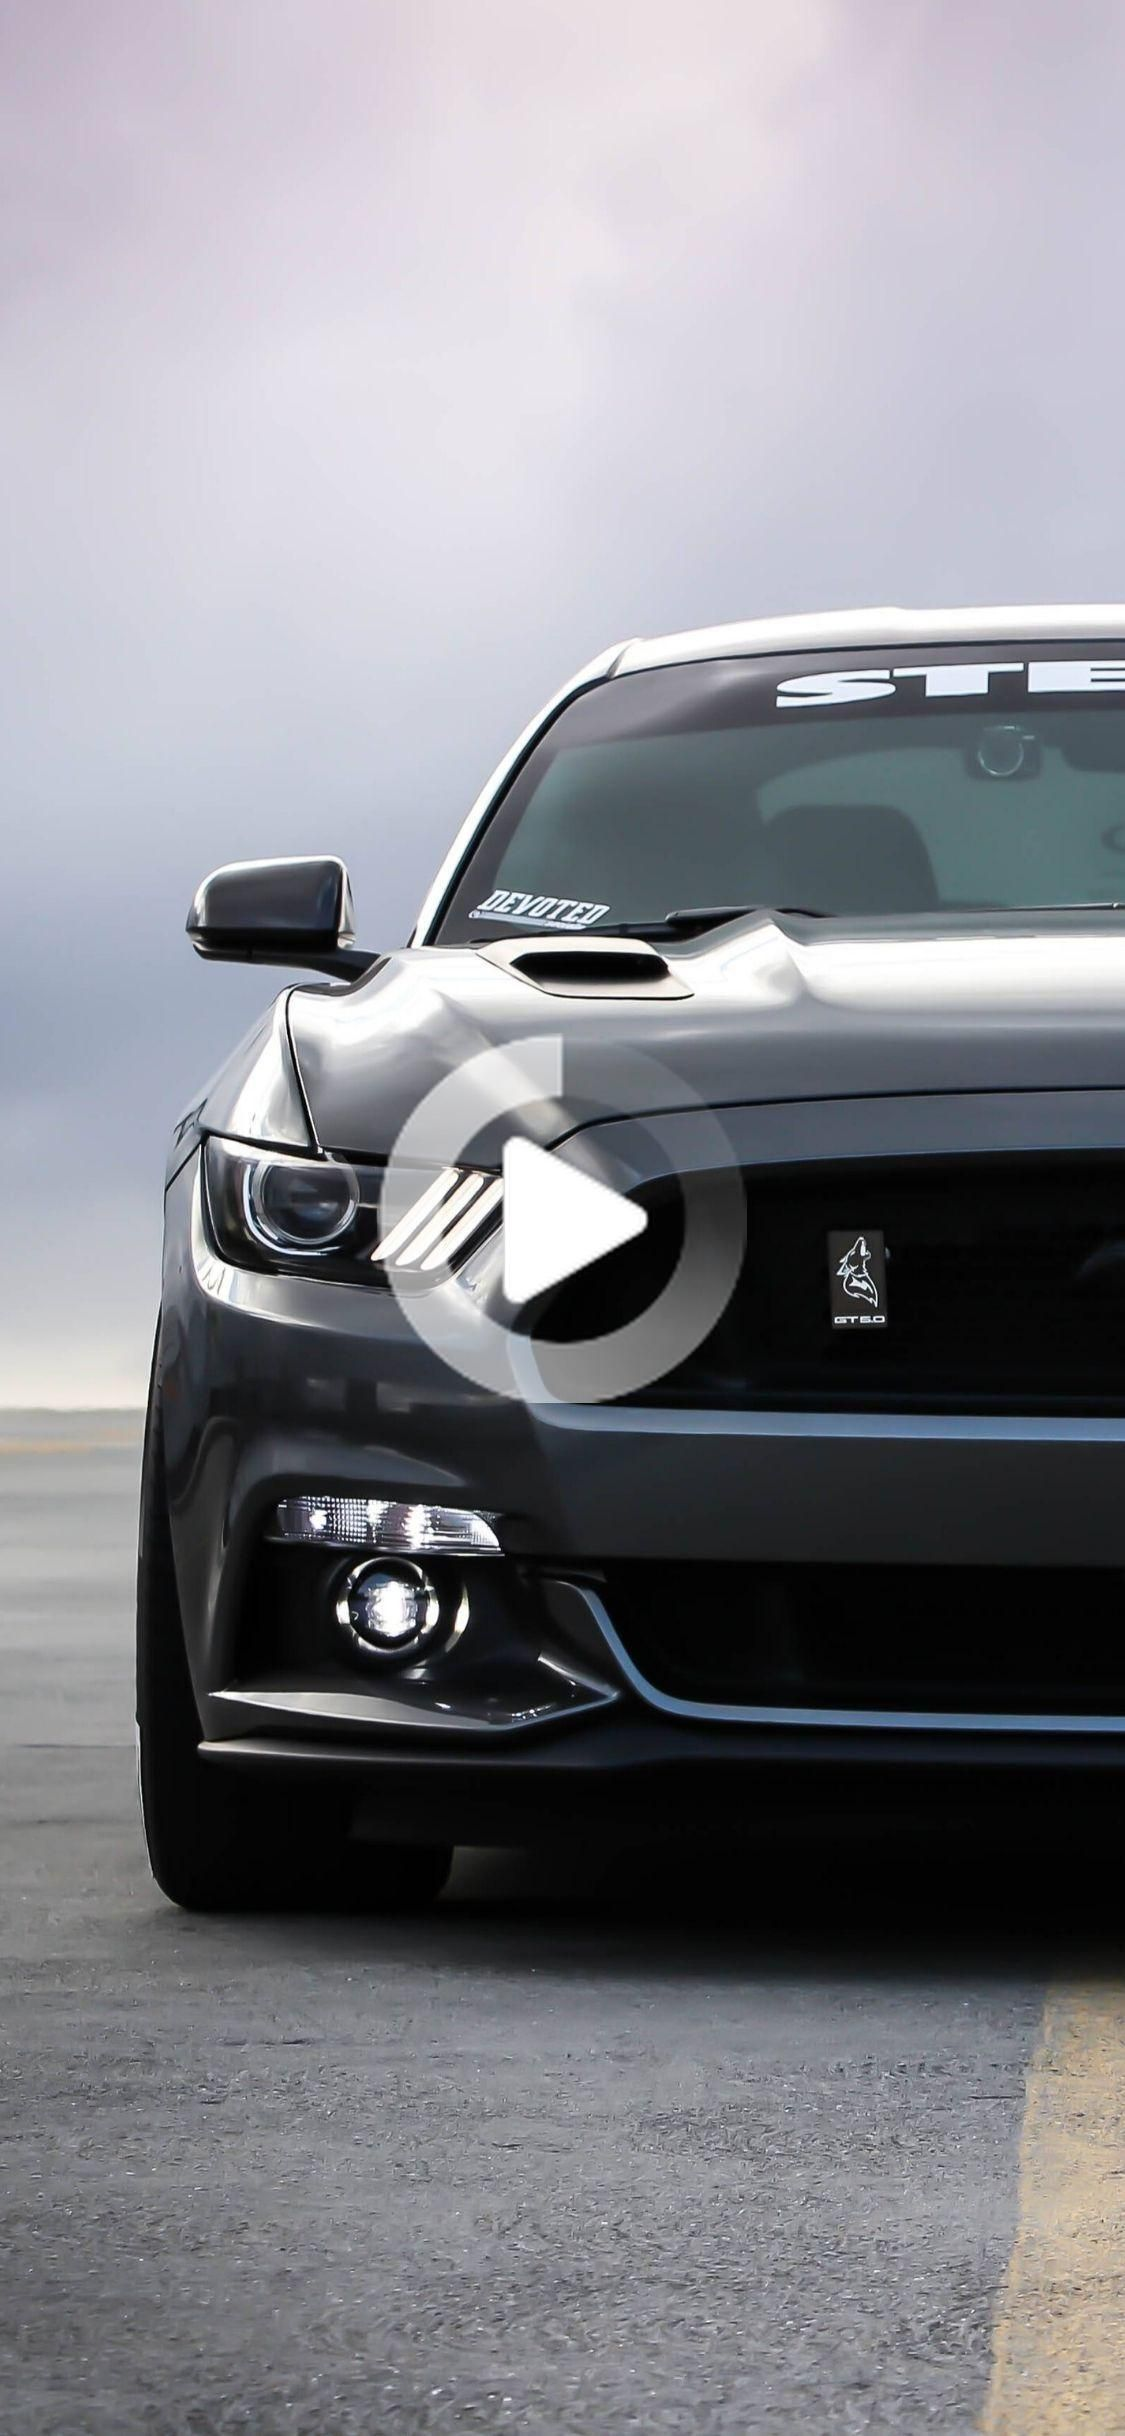 Car Wallpapers Iphone X Best Hd Iphone Wallpapers Download Car Wallpapers Porsche Iphone Wallpaper Muscle Cars Mustang